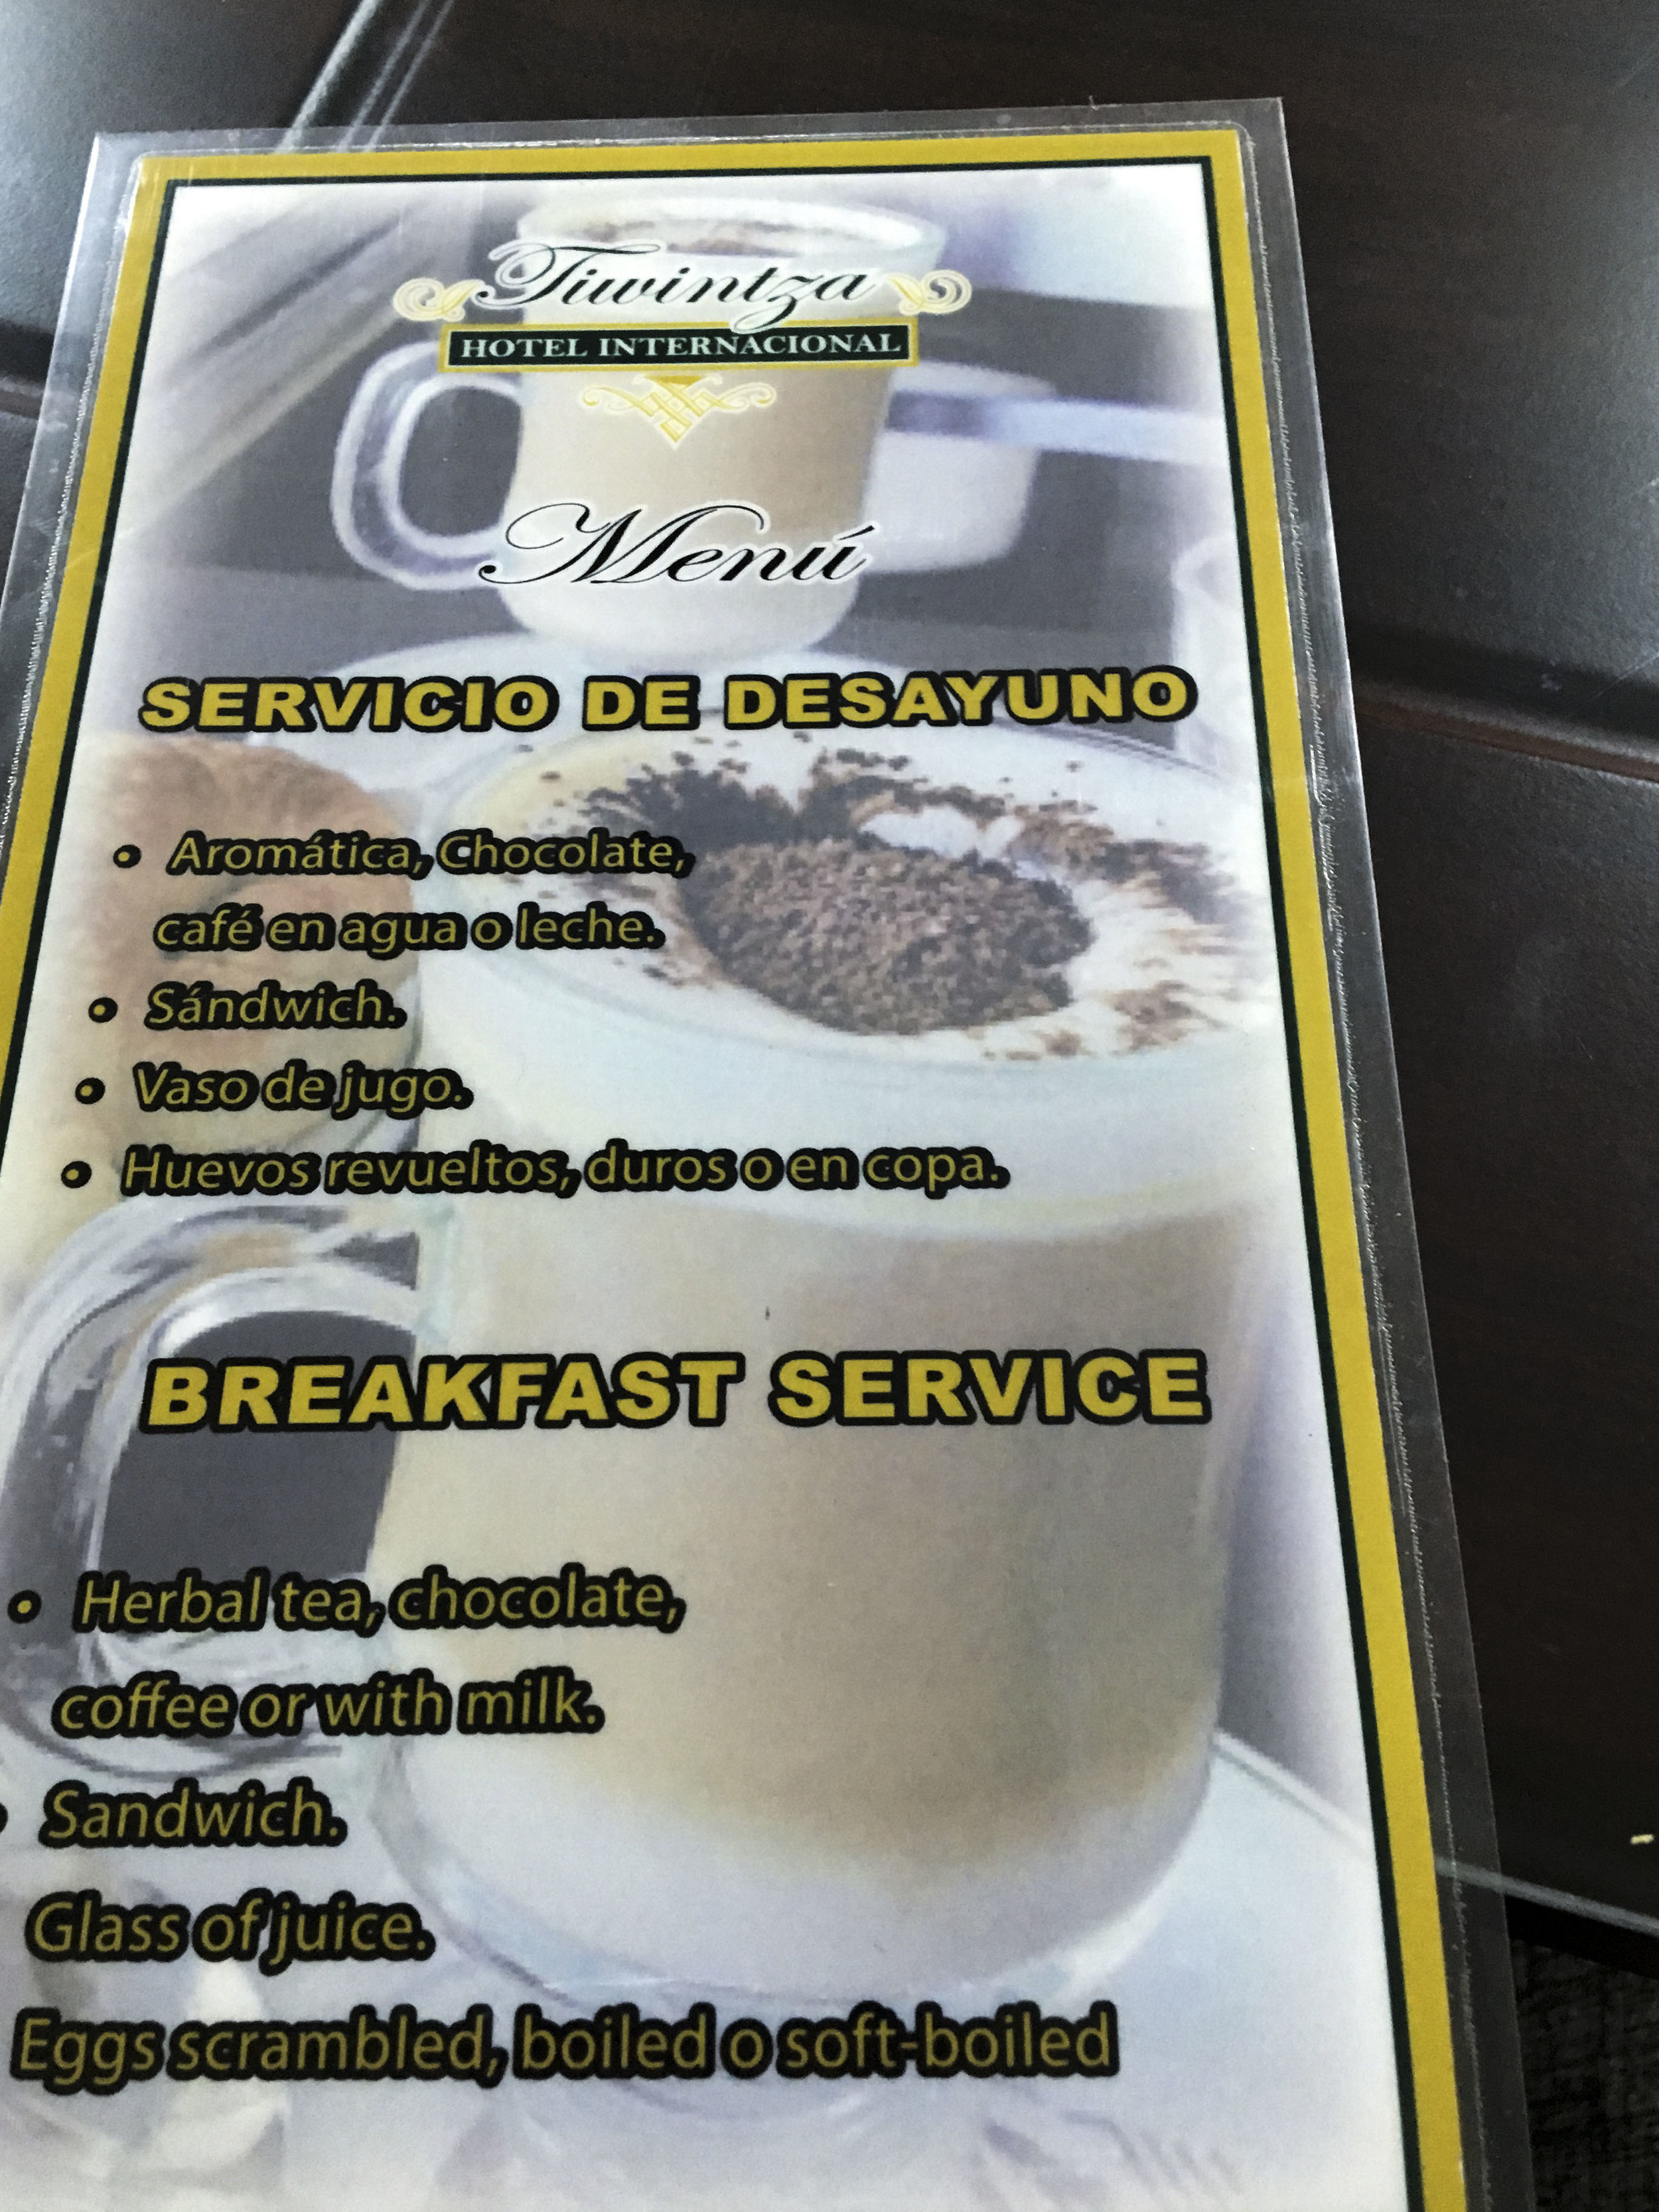 Quito hotel breakfast.jpg